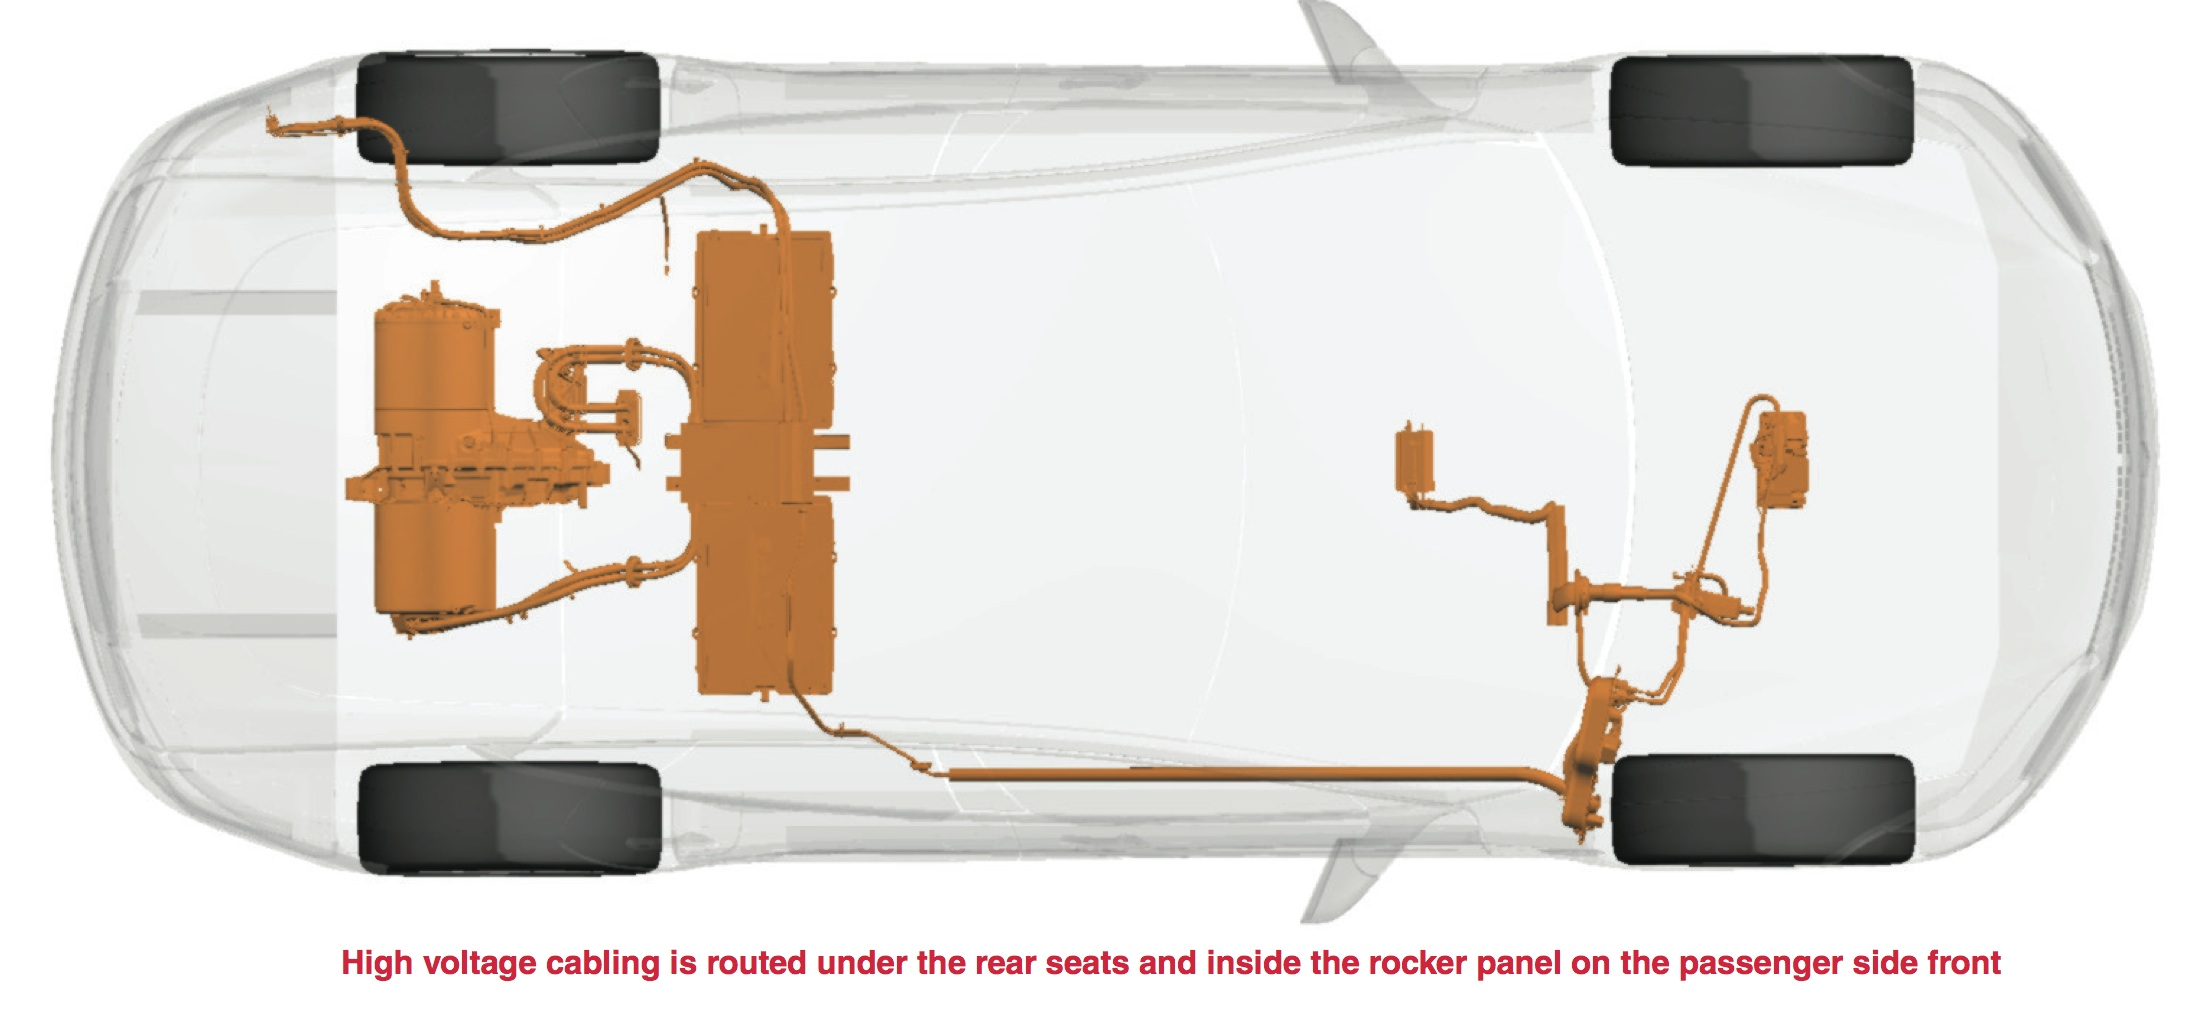 The rear engine is an extremely heavy component, and it hangs just aft of the rear wheels.